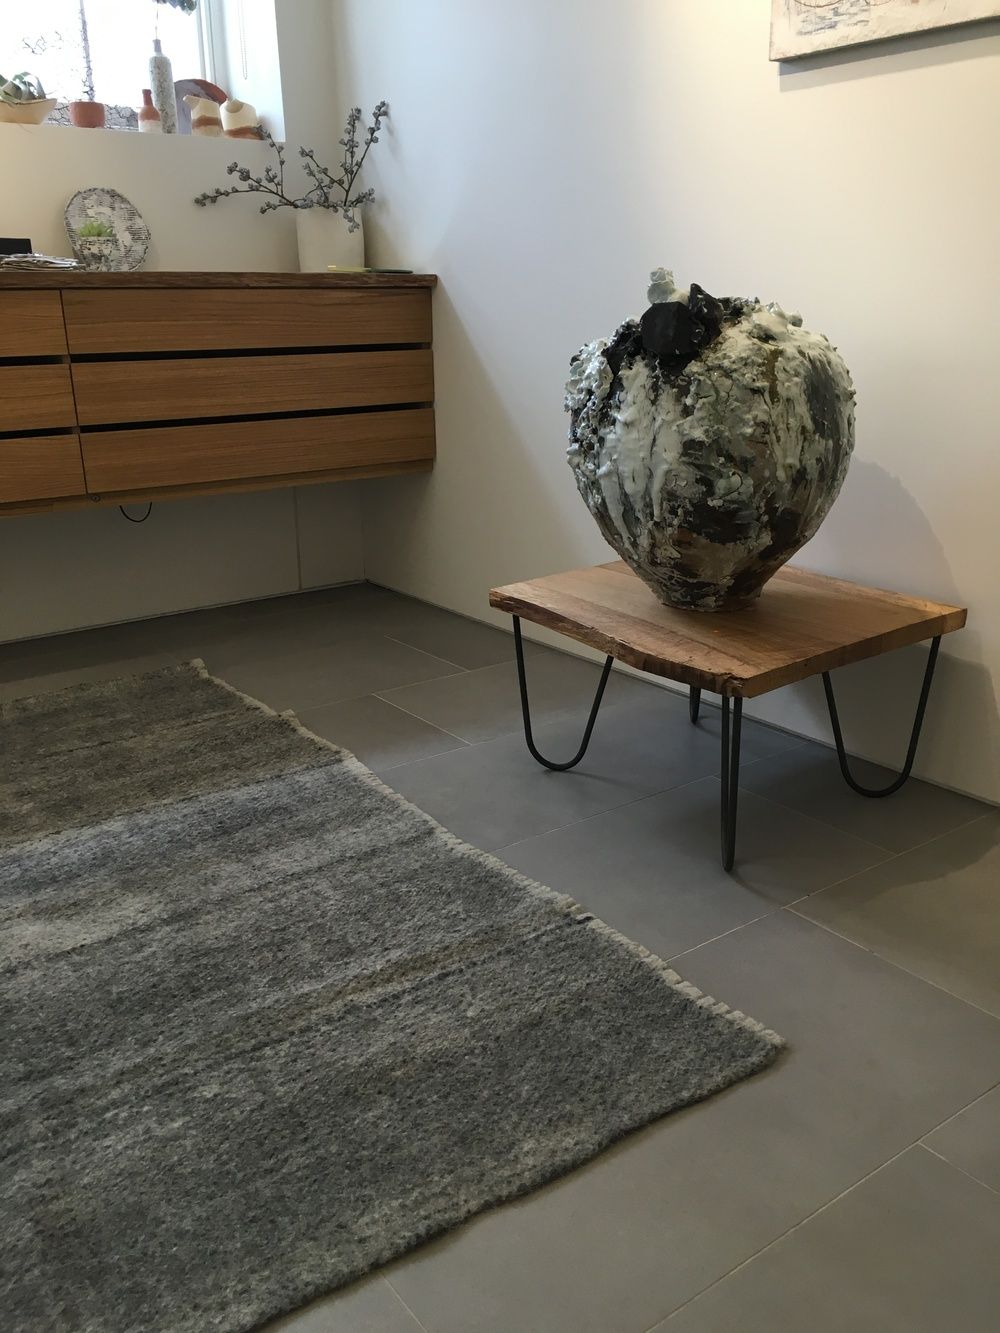 Akiko Hirai's Moon Jar, with radhi rug at Flow Gallery